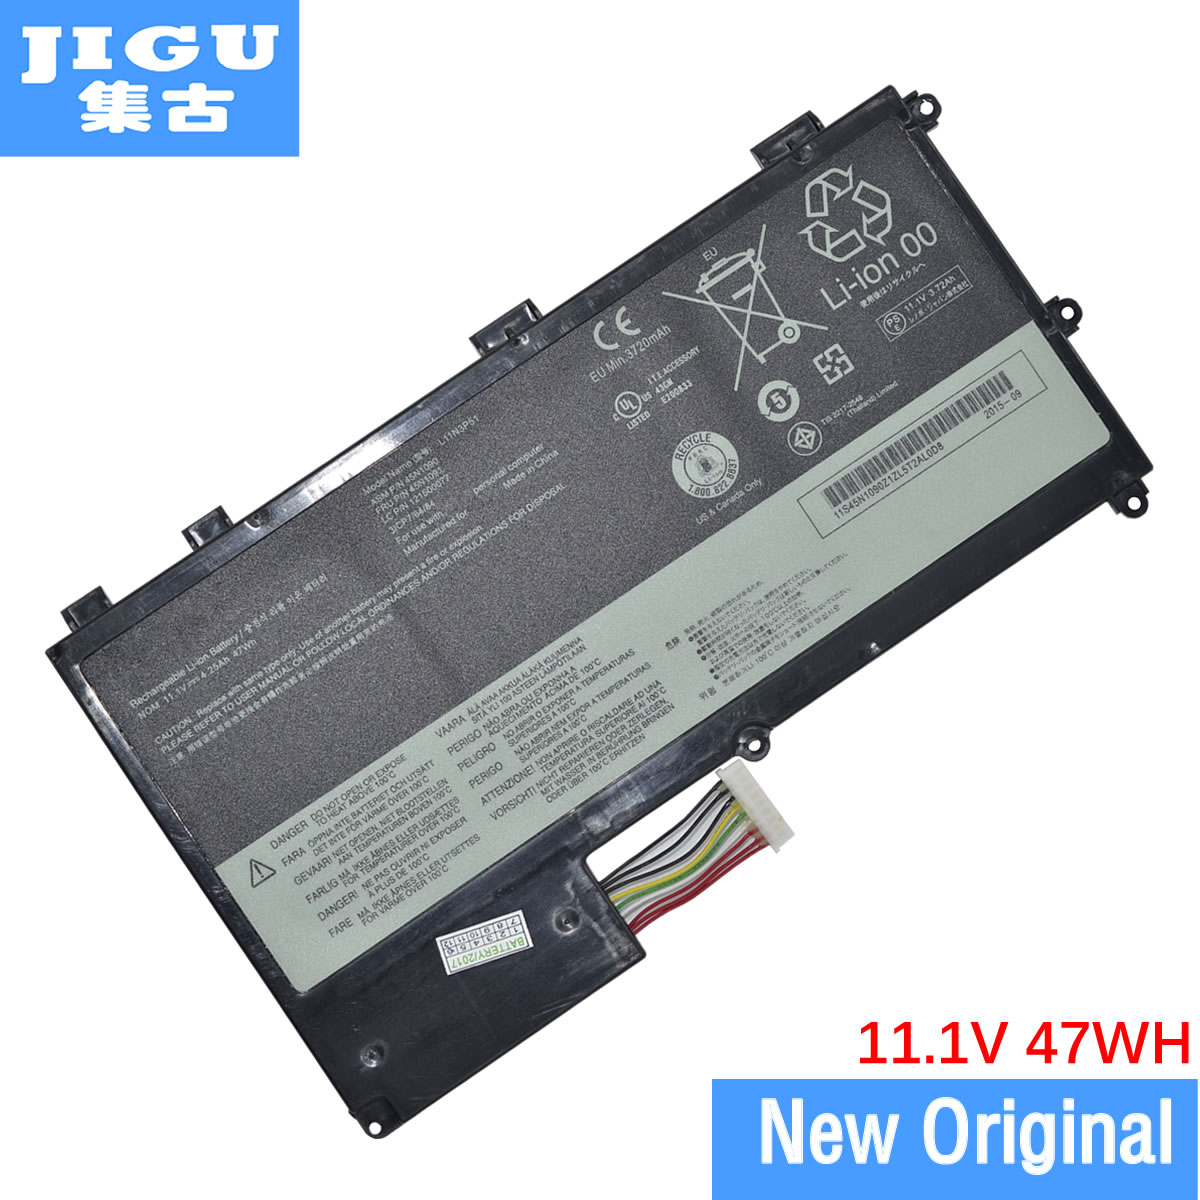 JIGU 45N1088 45N1089 45N1090 45N1091 L11N3P51 L11S3P51 Original Laptop Battery For <font><b>Lenovo</b></font> ThinkPad <font><b>T430u</b></font> Ultrabook image